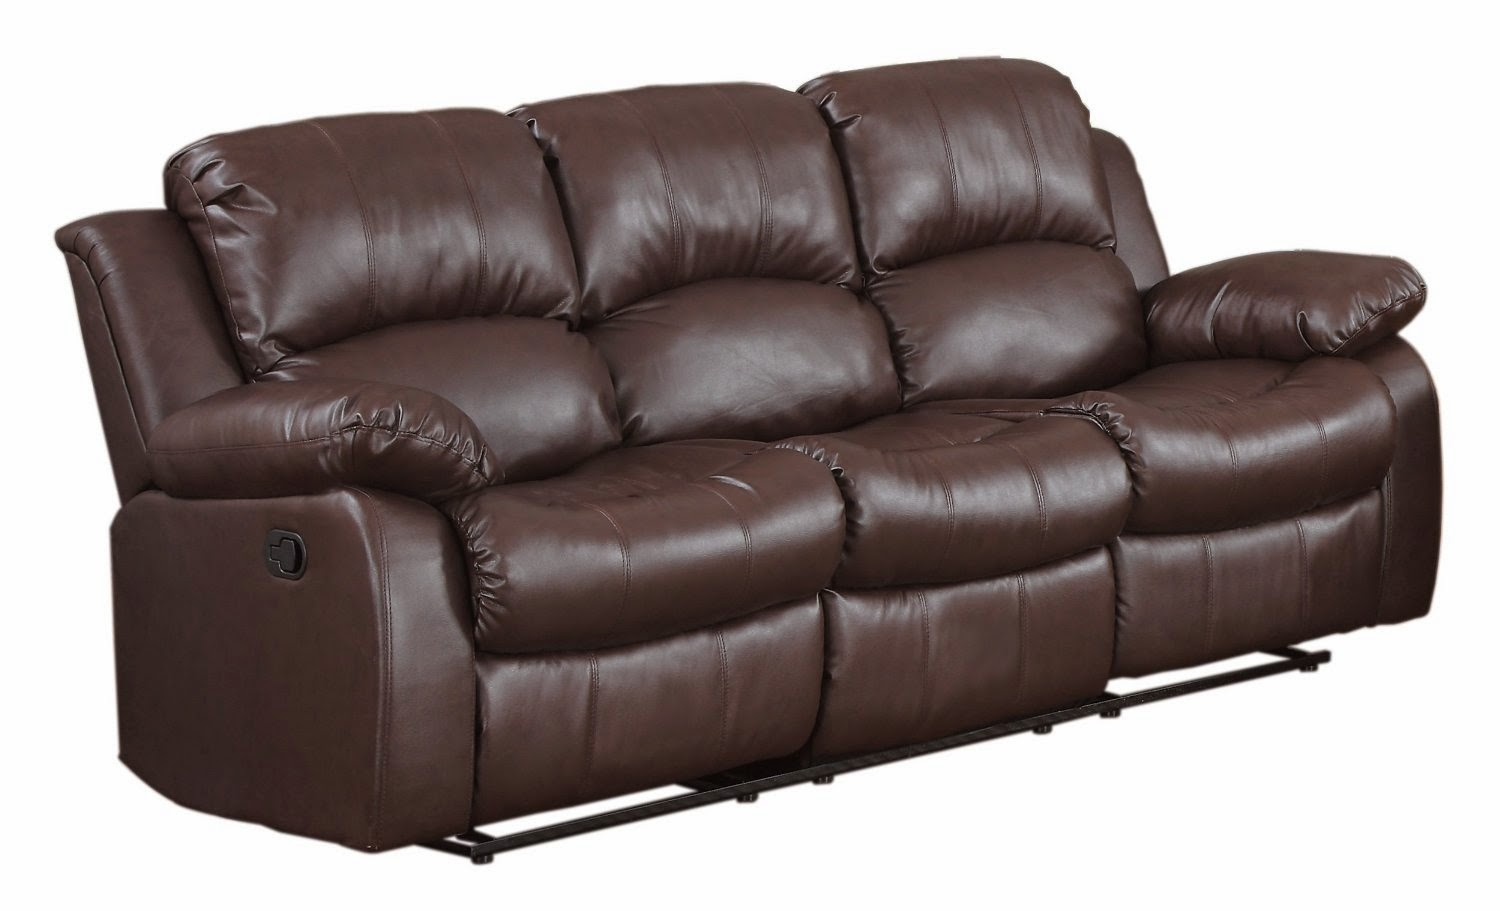 The Best Reclining Leather Sofa Reviews Loukas Leather Reclining Sectional Sofa With Reclining